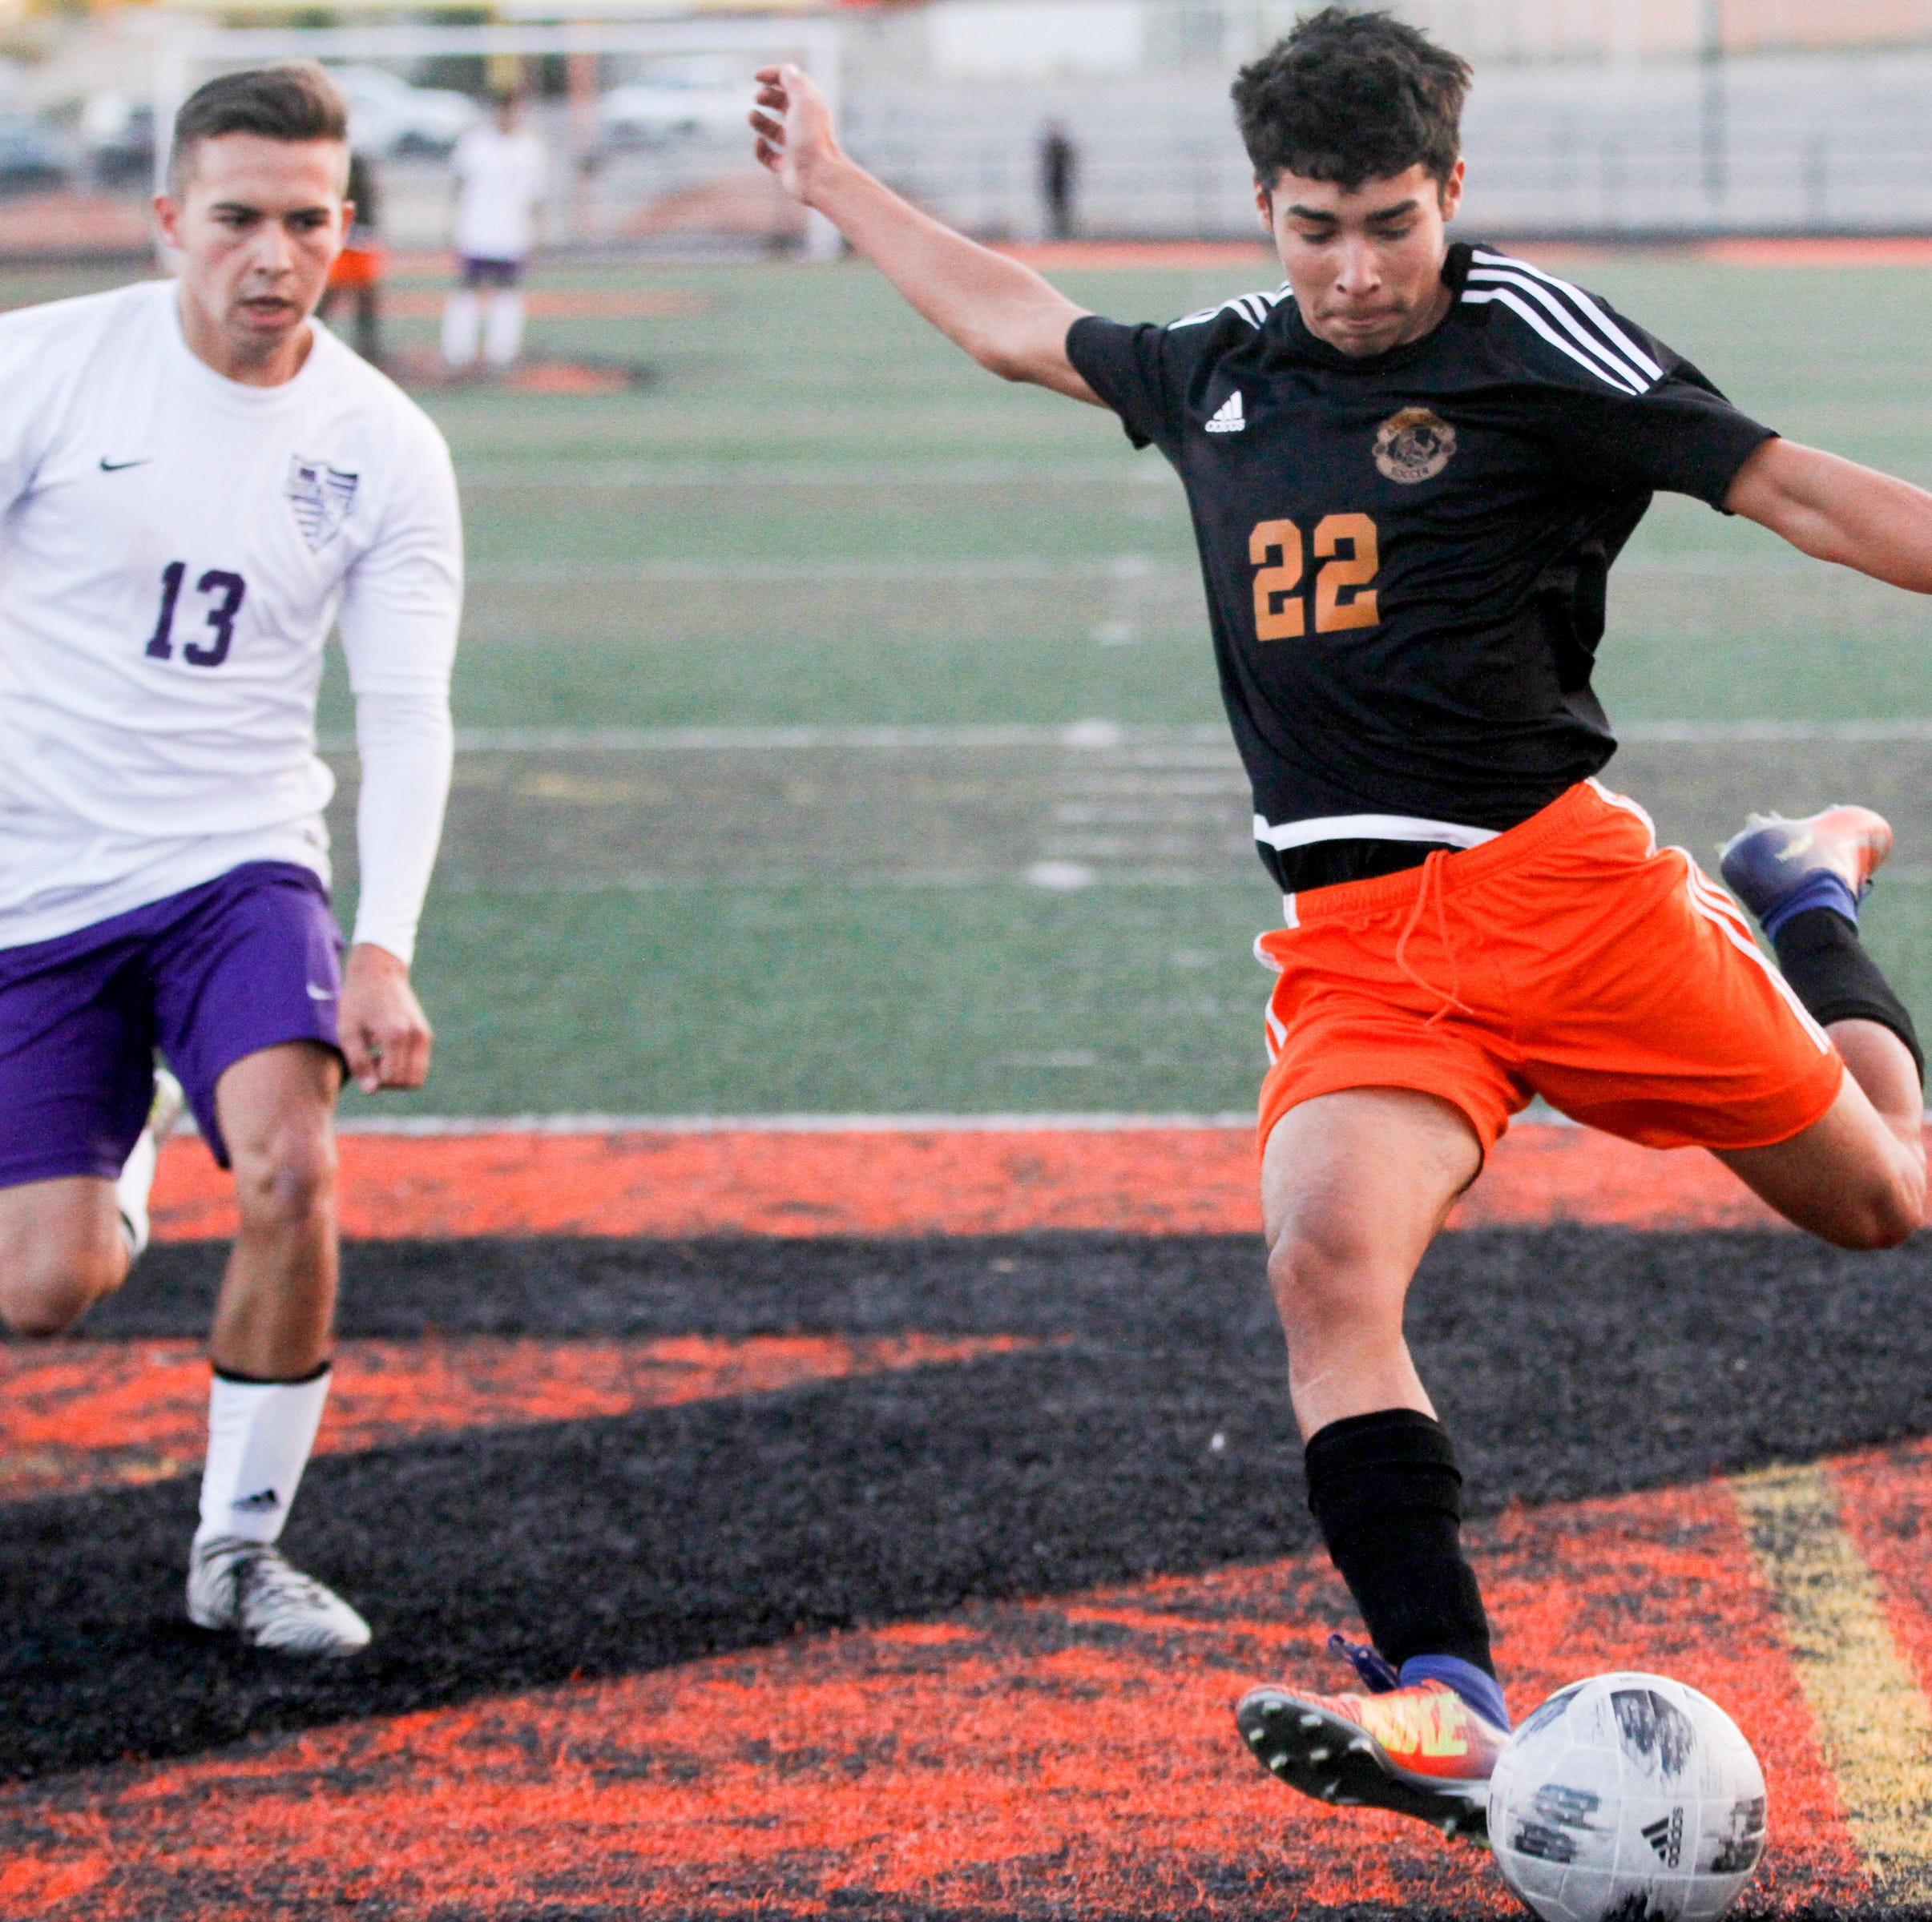 Tigers hunger for elusive district title